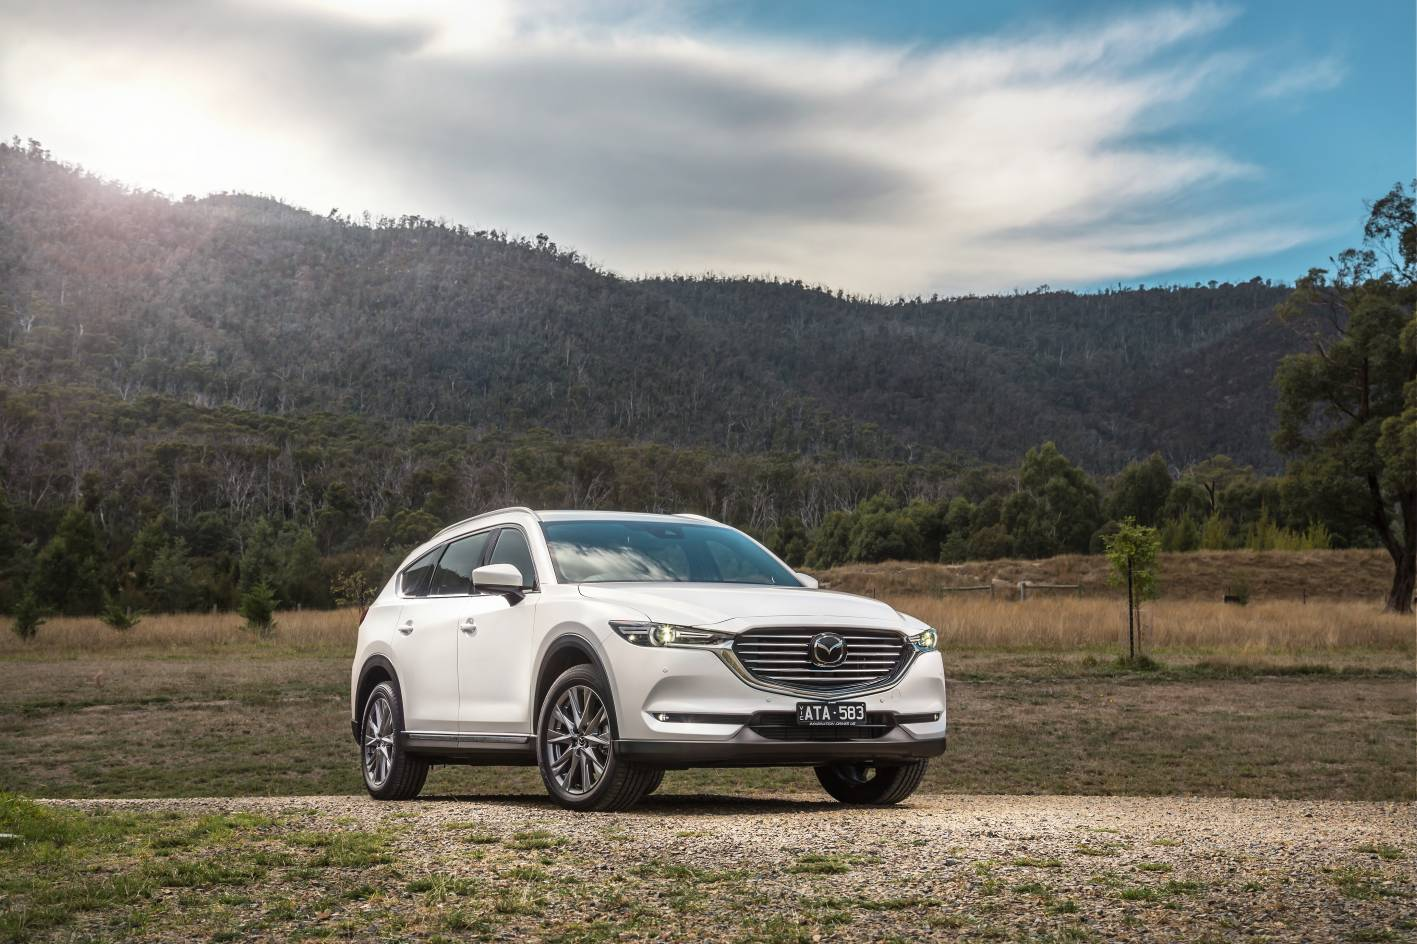 Mazda's diesel CX-8 SUV – gains minor styling updates and added specification